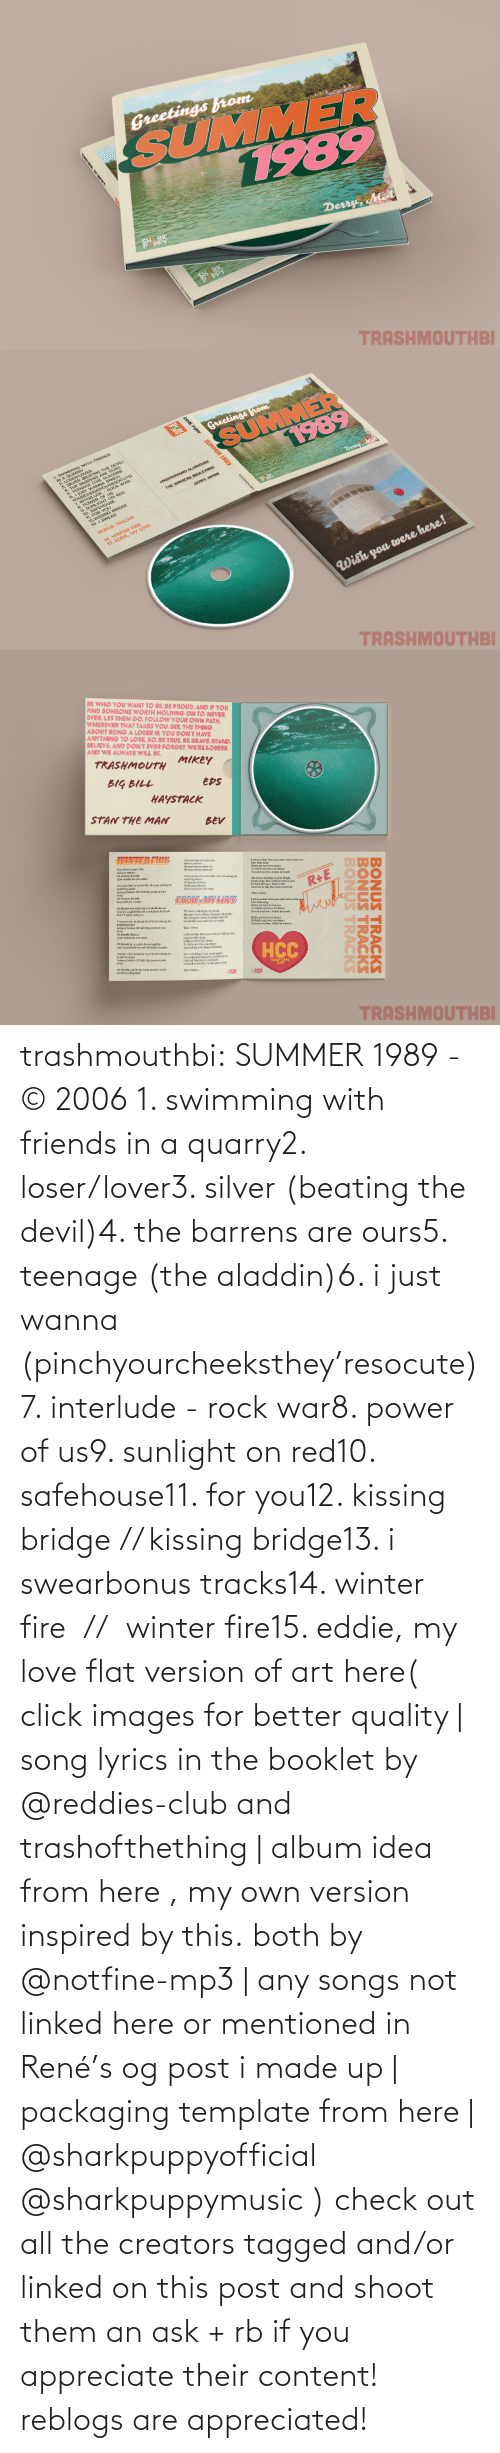 Tagged: trashmouthbi: SUMMER 1989 - © 2006 1. swimming with friends in a quarry2. loser/lover3. silver (beating the devil)4. the barrens are ours5. teenage (the aladdin)6. i just wanna (pinchyourcheeksthey'resocute)7. interlude - rock war8. power of us9. sunlight on red10. safehouse11. for you12. kissing bridge // kissing bridge13. i swearbonus tracks14. winter fire  //  winter fire15. eddie, my love flat version of art here( click images for better quality | song lyrics in the booklet by @reddies-club​ and trashofthething | album idea from here , my own version inspired by this. both by @notfine-mp3​ | any songs not linked here or mentioned in René's og post i made up | packaging template from here | @sharkpuppyofficial​ @sharkpuppymusic​ ) check out all the creators tagged and/or linked on this post and shoot them an ask + rb if you appreciate their content! reblogs are appreciated!